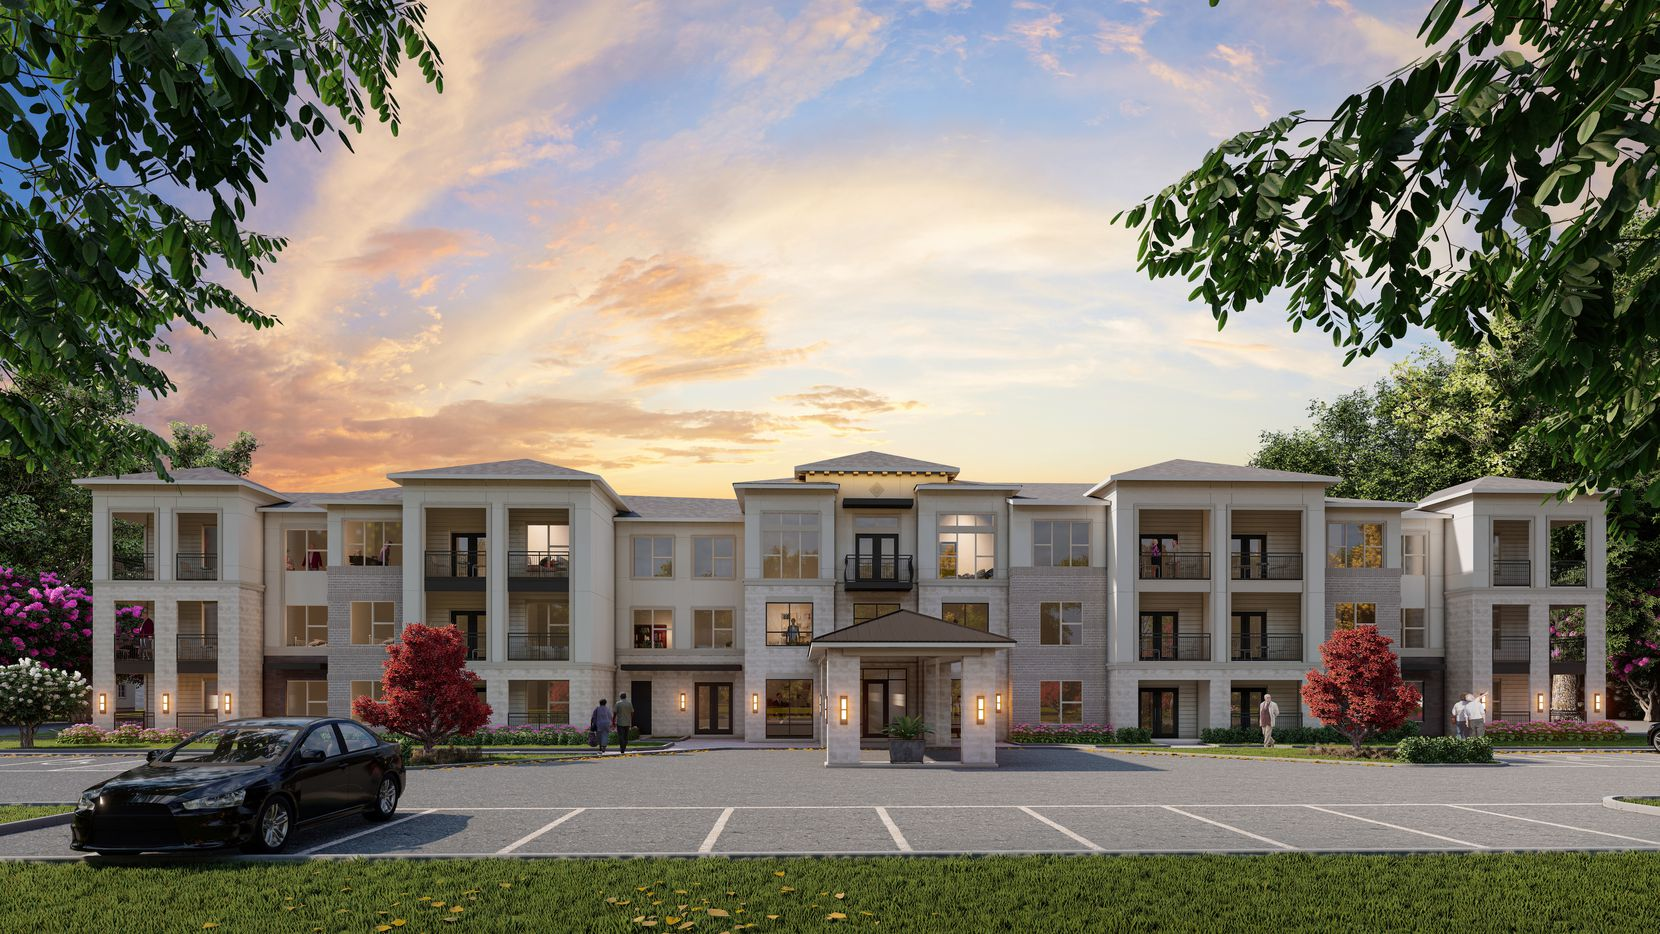 The Parmore Arcadia Trails will be a 200-unit senior apartment community in Balch Springs.